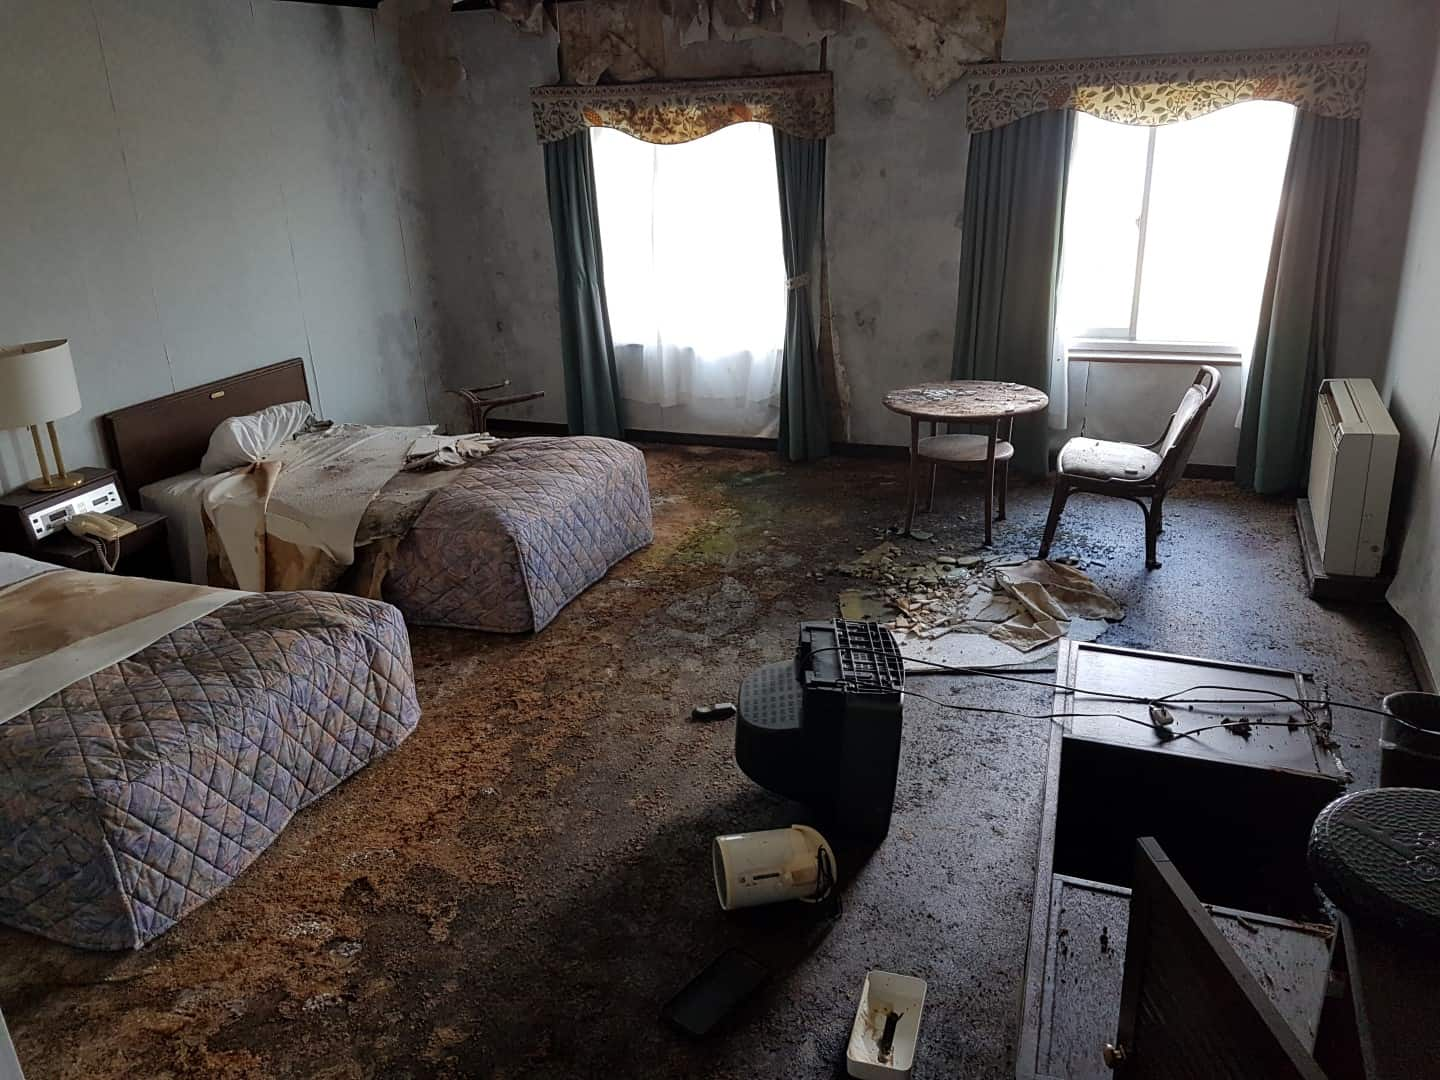 Western-style Room in Disrepair